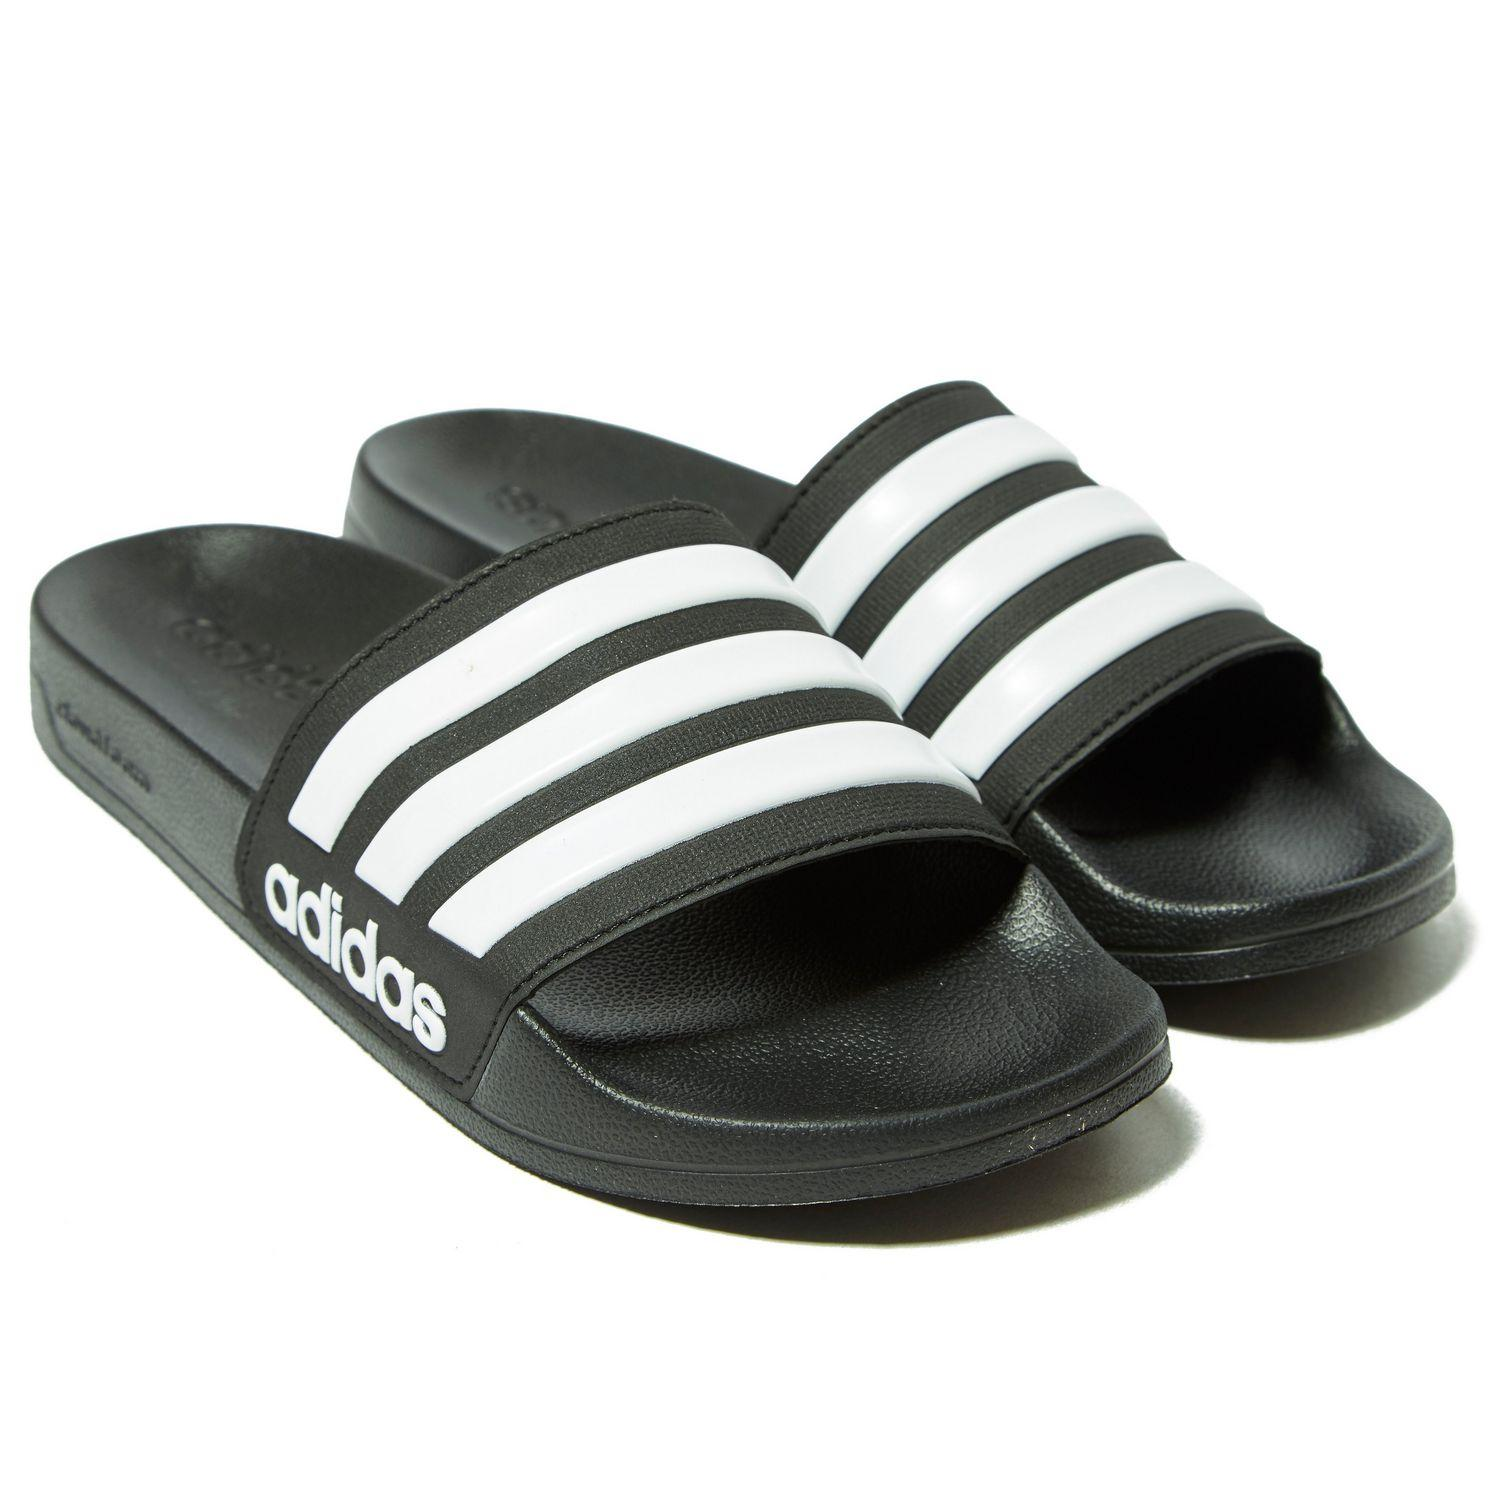 low priced 541cd 7d530 Adidas - Black Cloudfoam Adilette Slides for Men - Lyst. View fullscreen